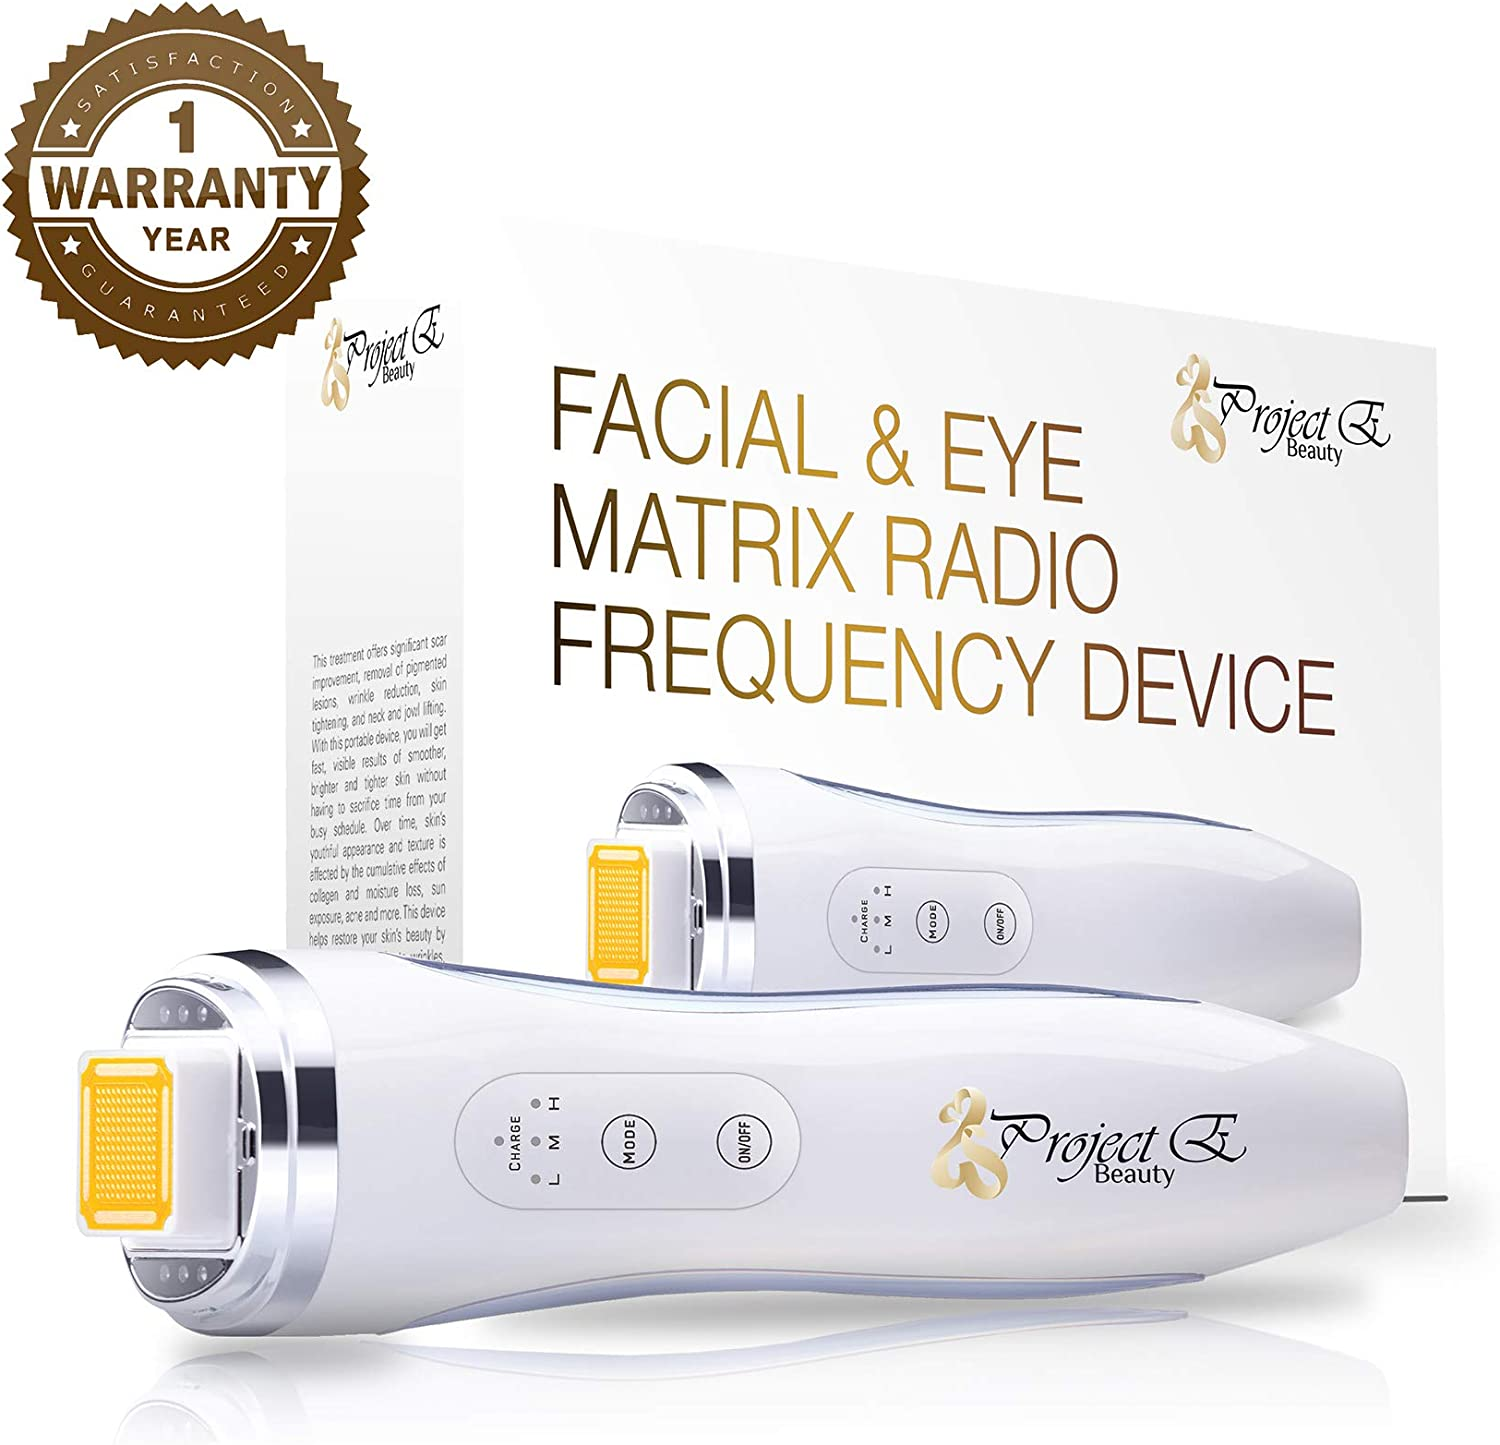 Project E Beauty Newest Best Effect Skin Tighten Face Lift Wrinkle Removal Skin Rejuvenation Mini Handheld Home Use Fractional Rf Machine